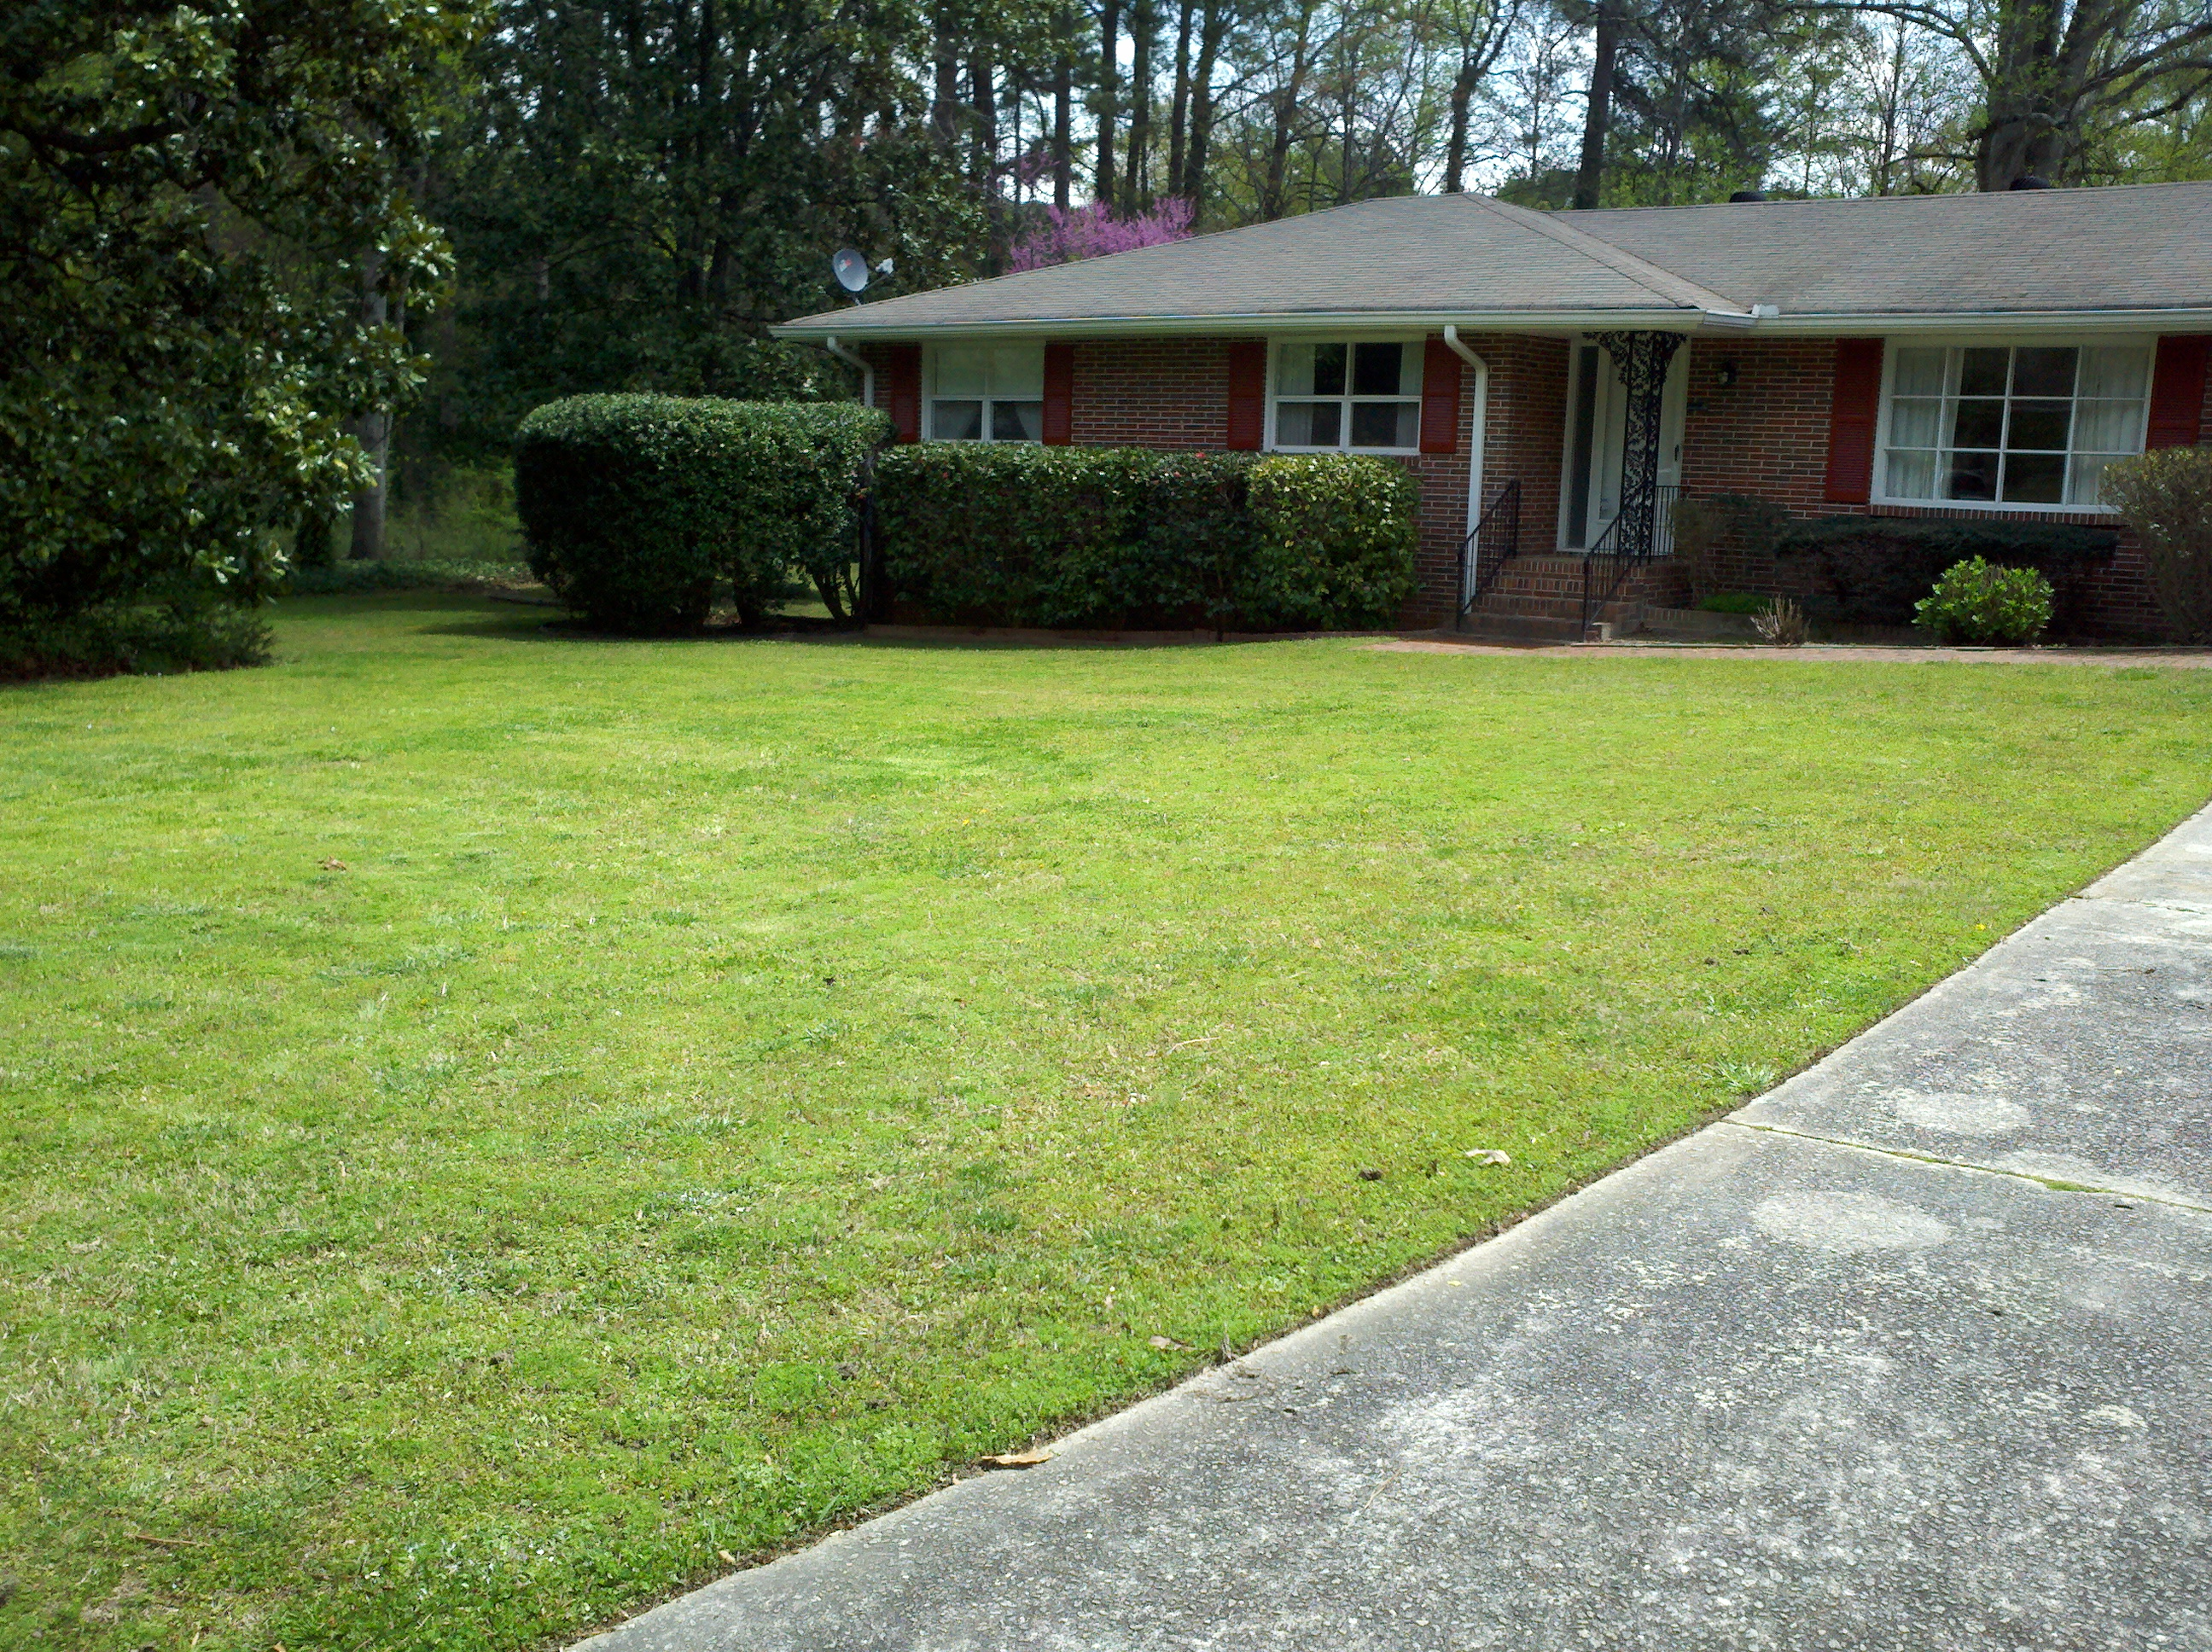 K n lawn maintenance lawrenceville georgia ga for Lawn care and maintenance